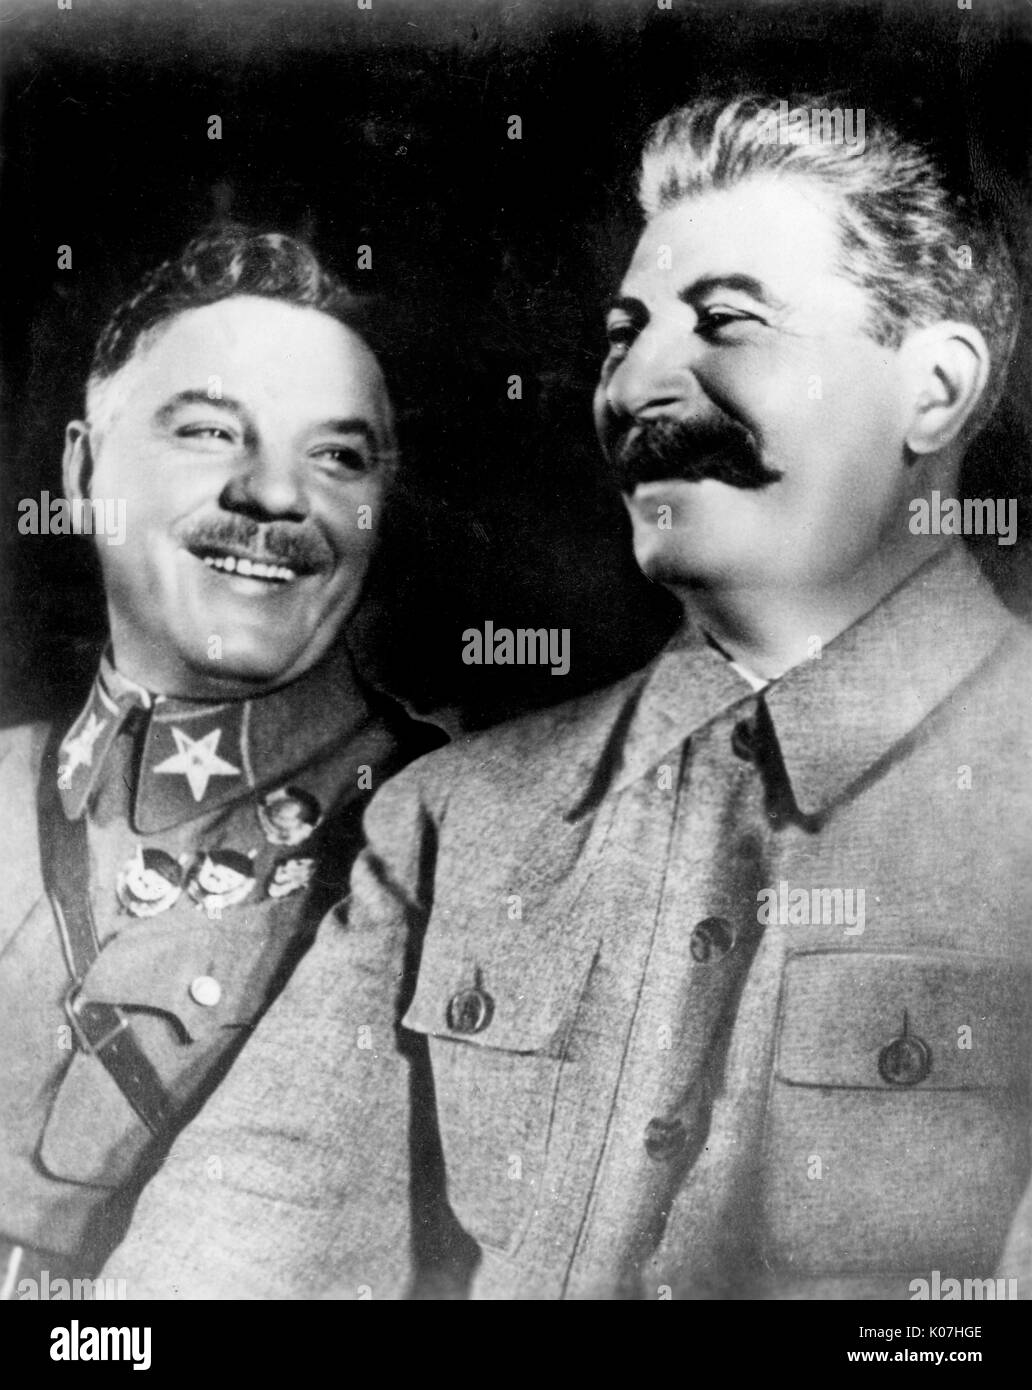 Josef Stalin (1879 - 1953) Soviet political leader with a colleague.       Date: - Stock Image